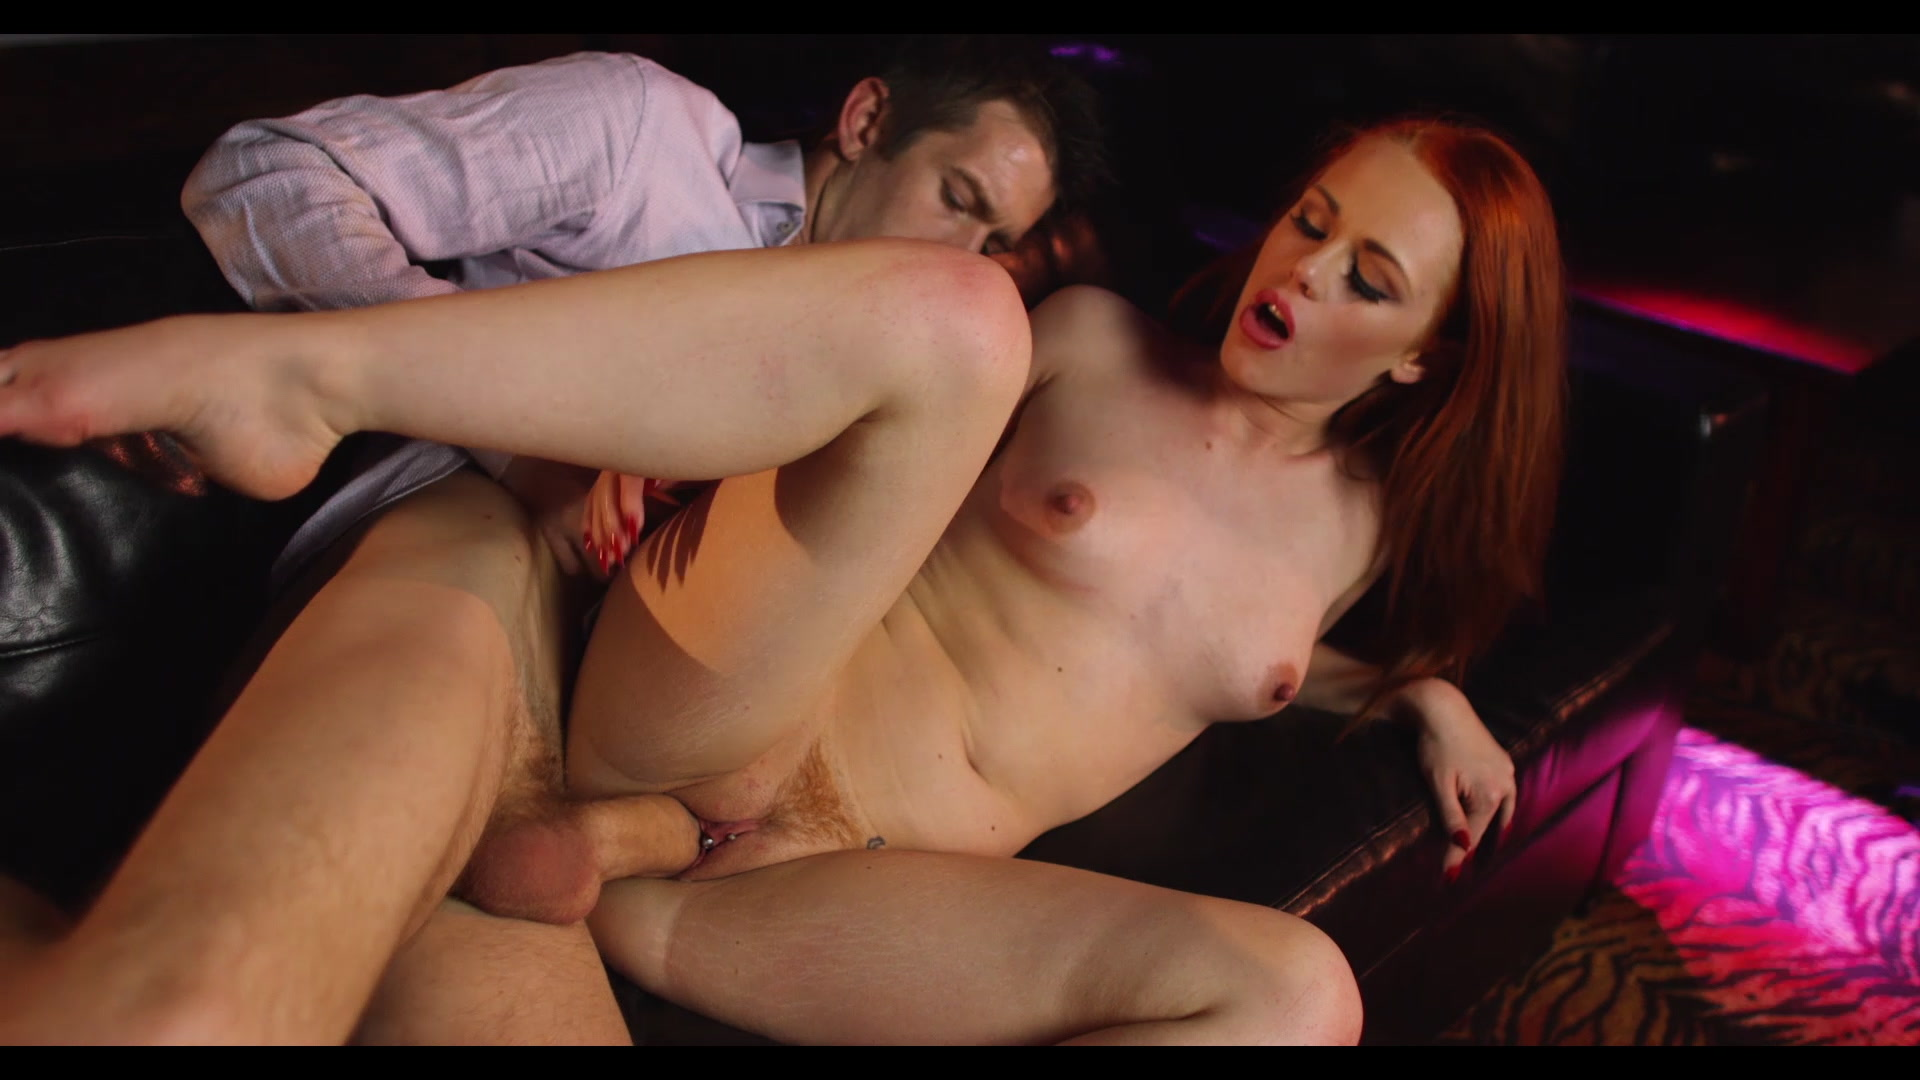 Scene with Ella Hughes - image 16 out of 20